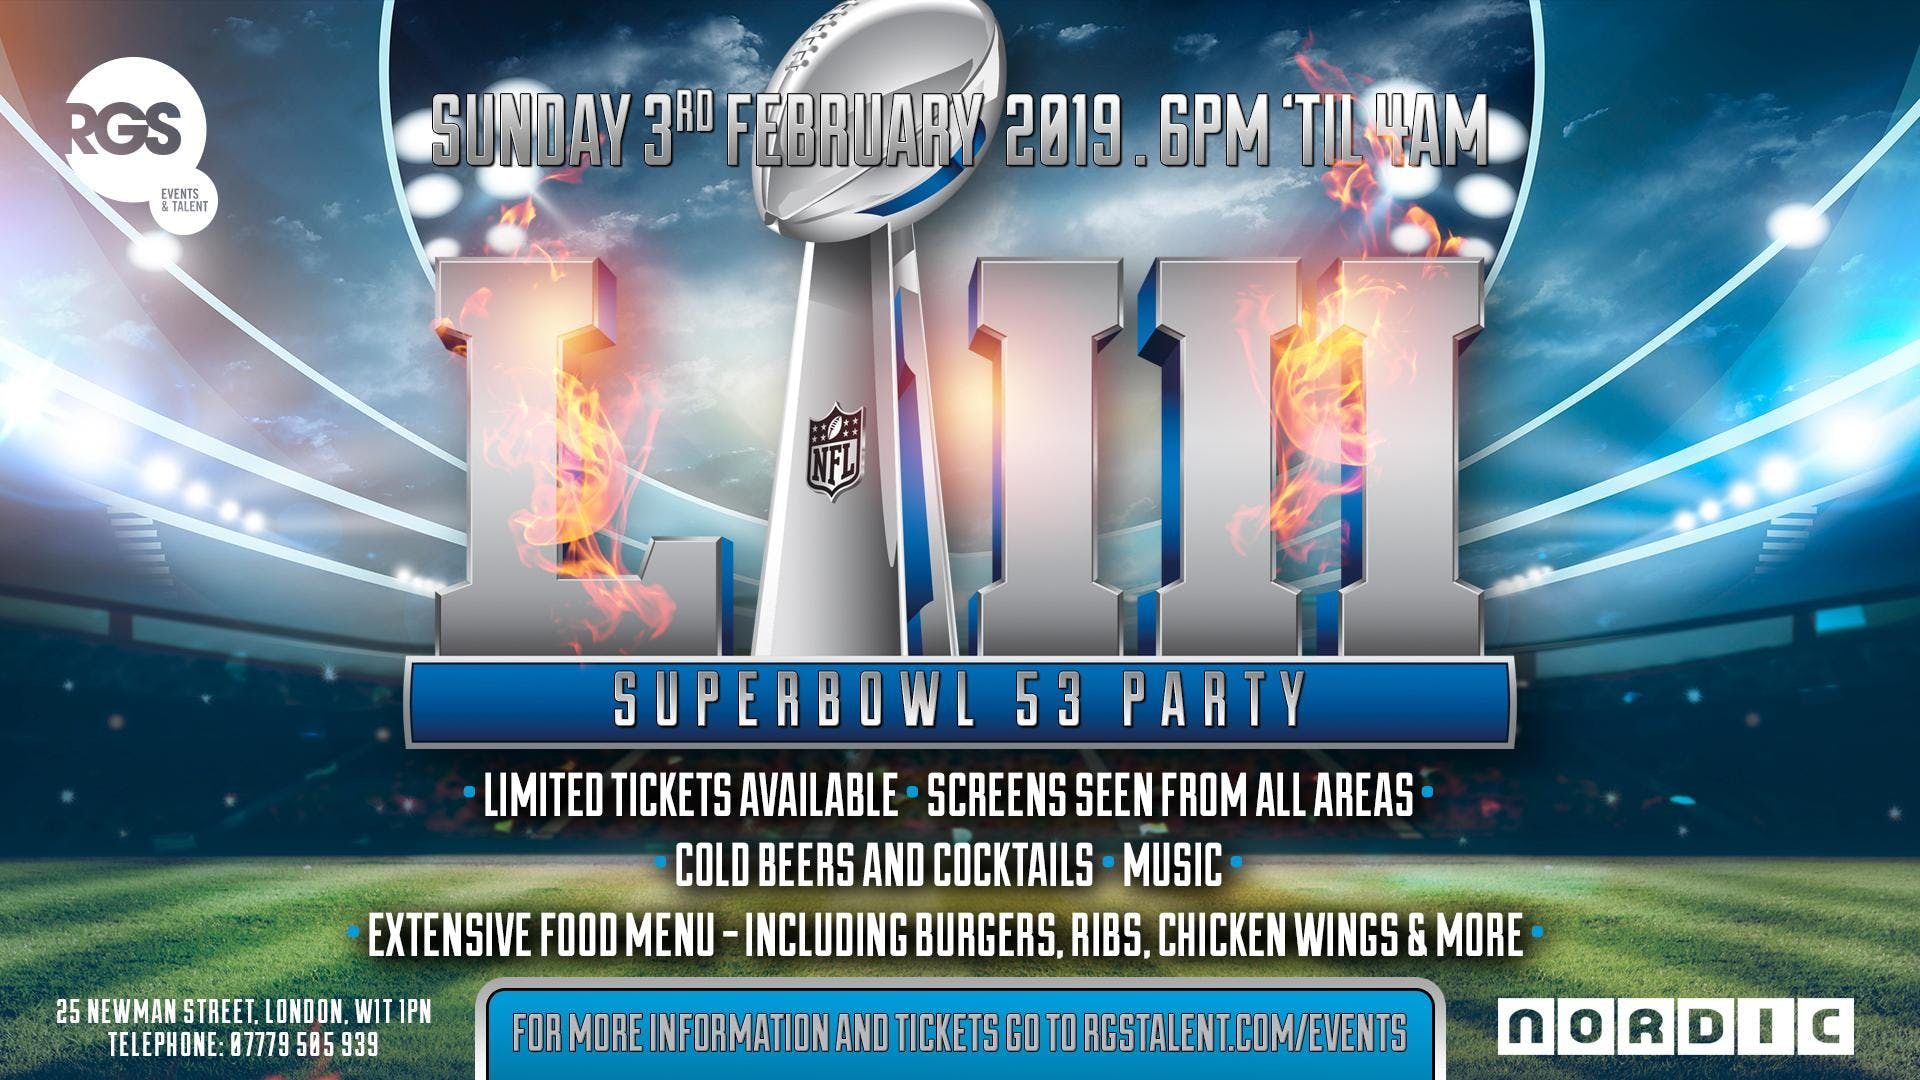 Superbowl 53 party in London